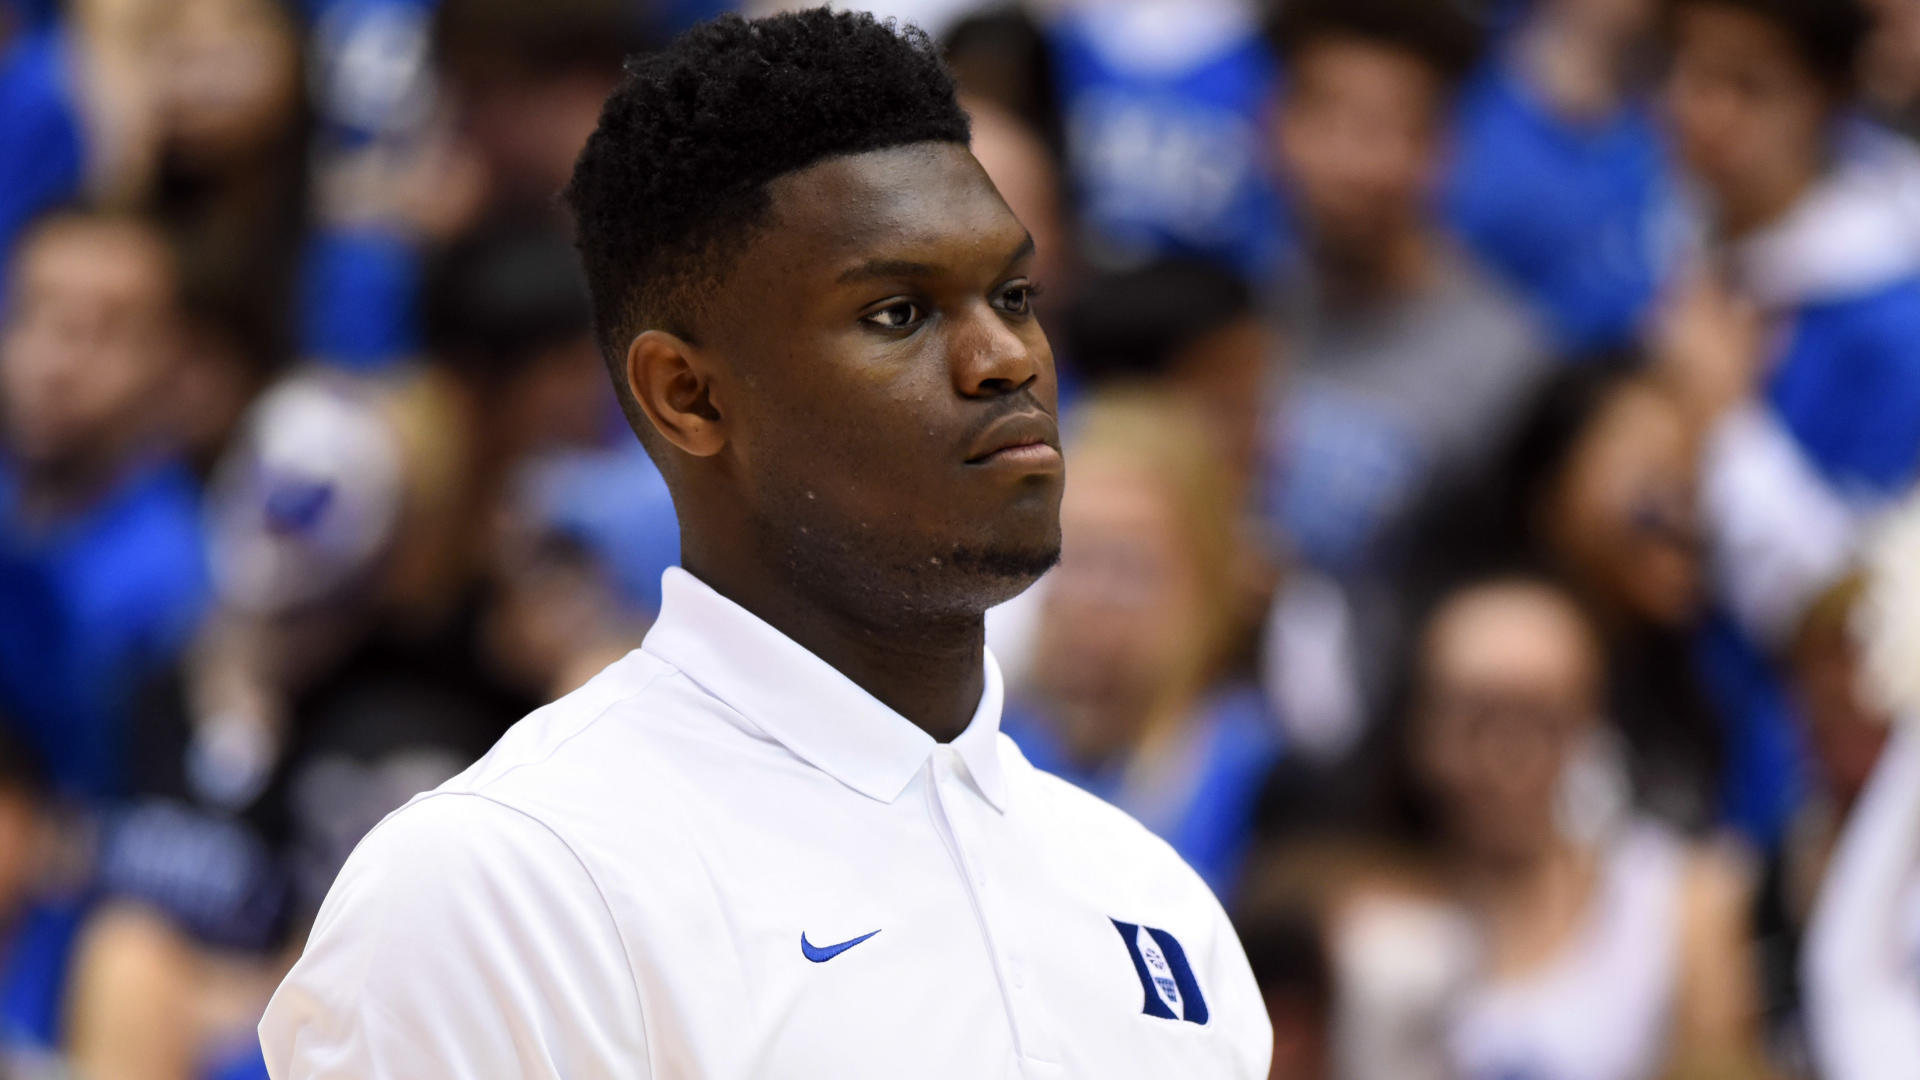 2019 NBA Draft Lottery odds: Keeping track of the race for Zion Williamson and No. 1 overall pick